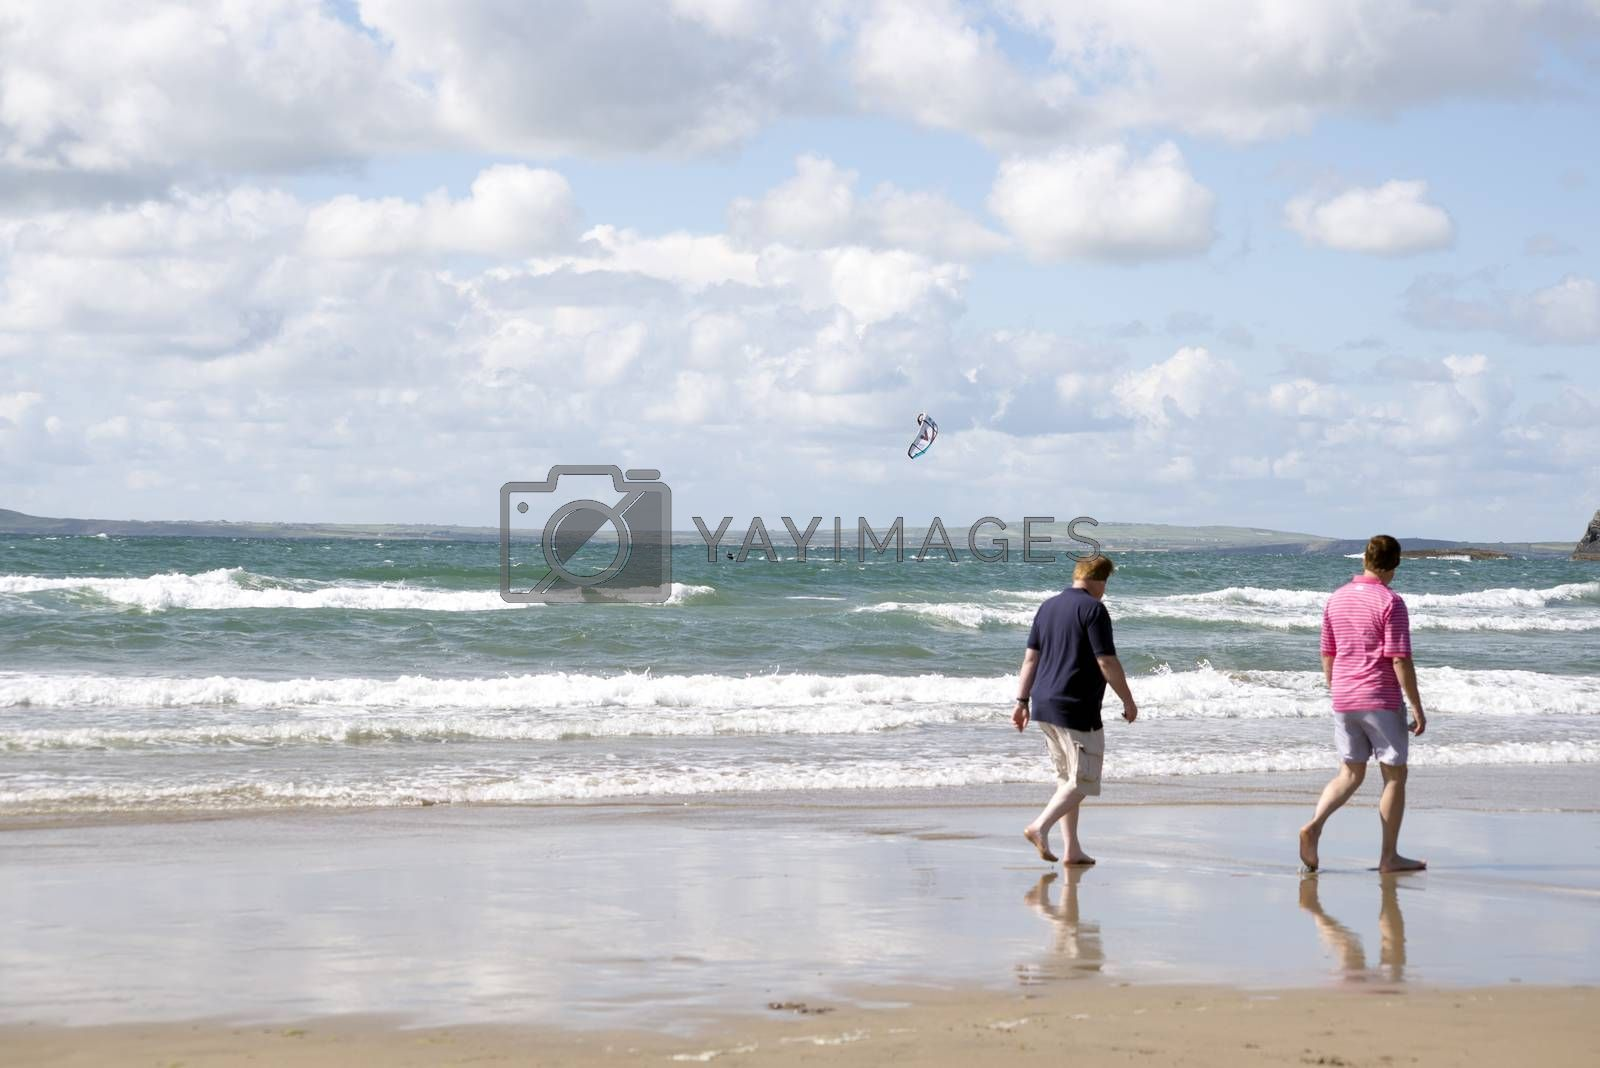 tourists watching kite surfer on beautiful waves at beach in ballybunion county kerry ireland on the wild atlantic way